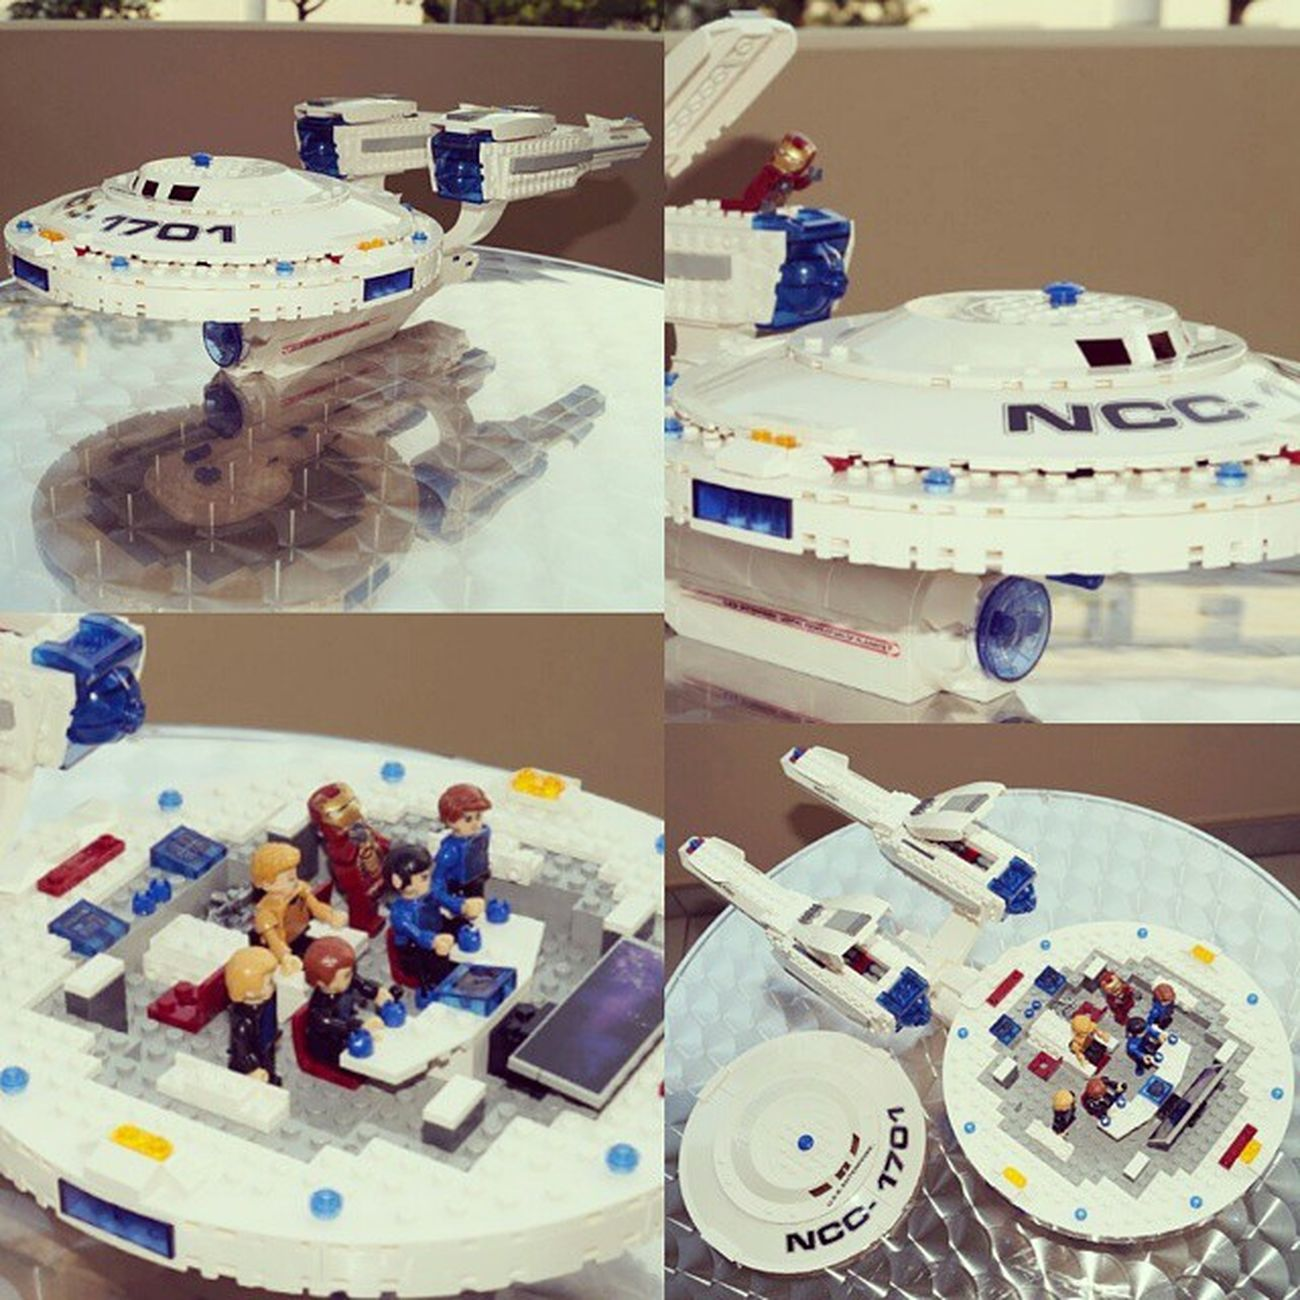 Utopia Planitia SpaceShip dockyard news: Yes, I must admit that I'm a Trekkie for decades. For this awesome shizzle it's excused for not being lego. hasbro kreo scifi bricks rules new toy Uss Enterprise NCC1701 kirkspock mccoy , 2 always dying extra artists . Ironman gene roddenberry to boldly go where no one has gone before ... live long and prosper out there